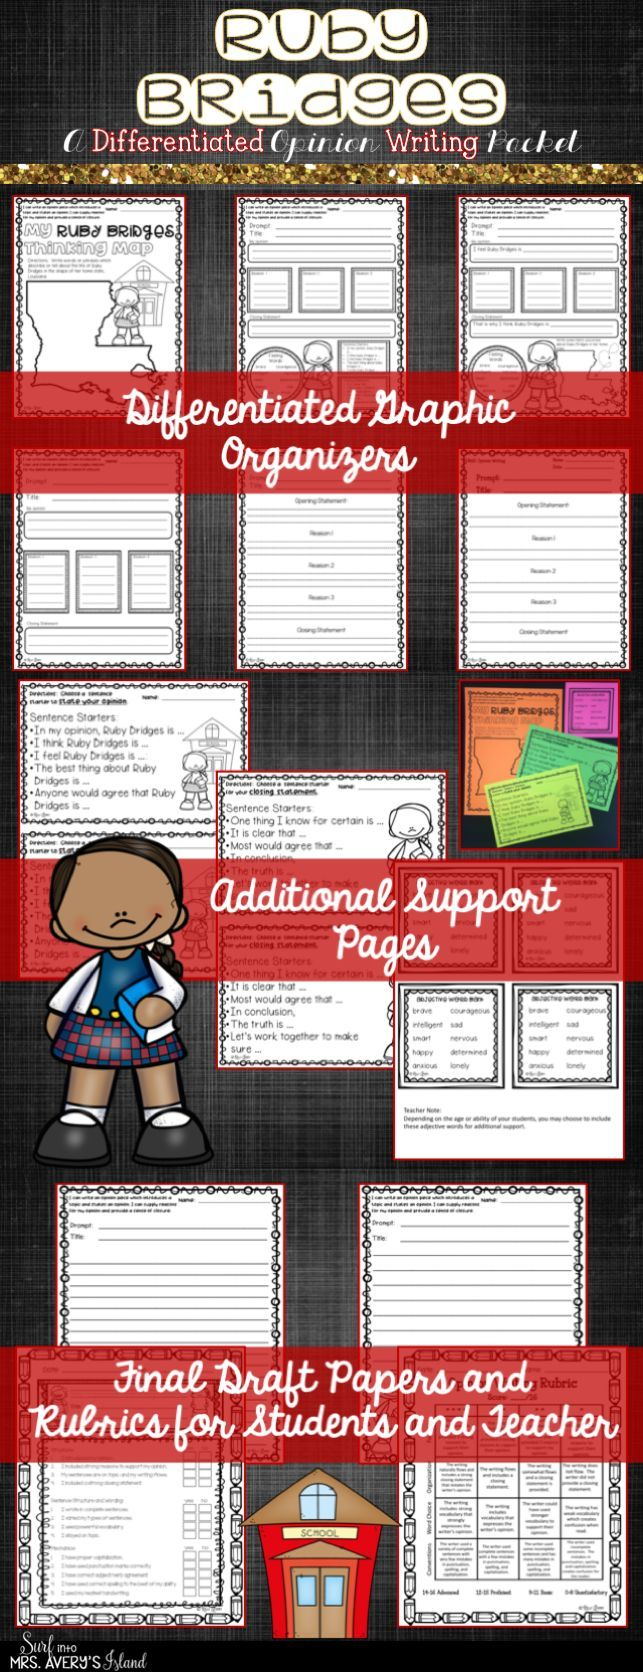 This Ruby Bridges opinion writing packet was created to meet the diverse needs of your students.  Whether you are seeking a lesson for Black History Month, or perhaps a writing lesson to teach your students how to write an opinion piece, this one is guaranteed to keep your students on the WRITE track!